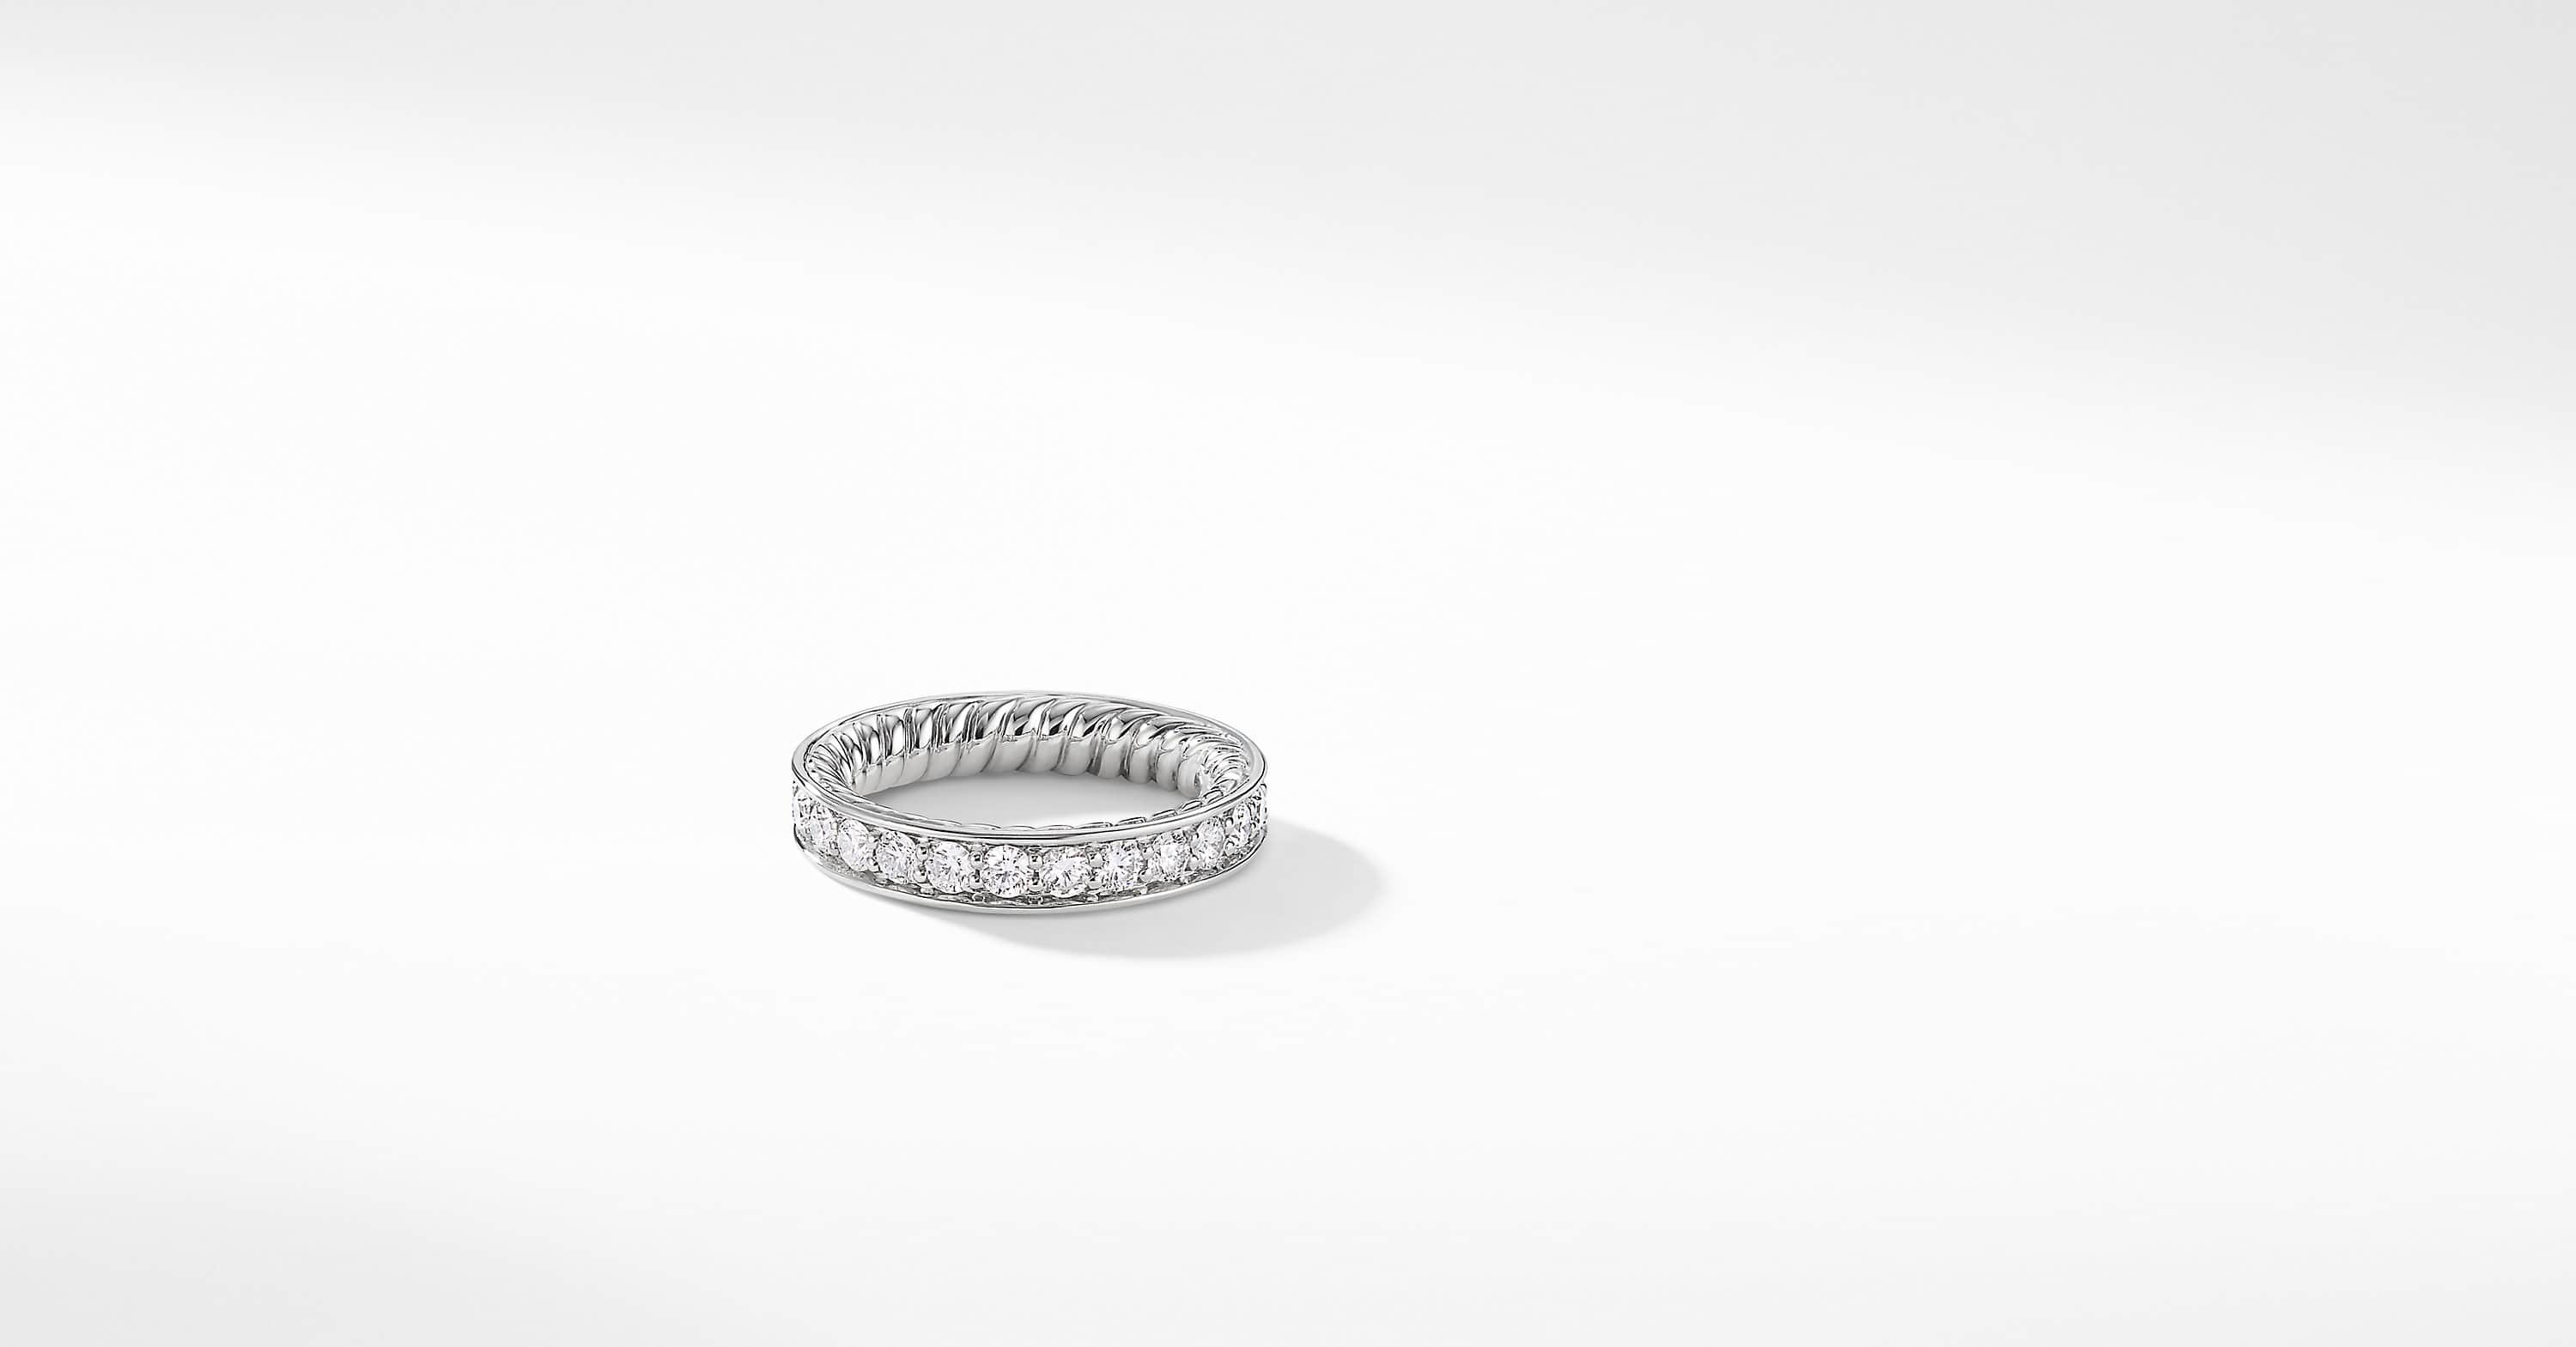 DY Eden Eternity Wedding Band with Diamonds in Platinum, 3.8mm